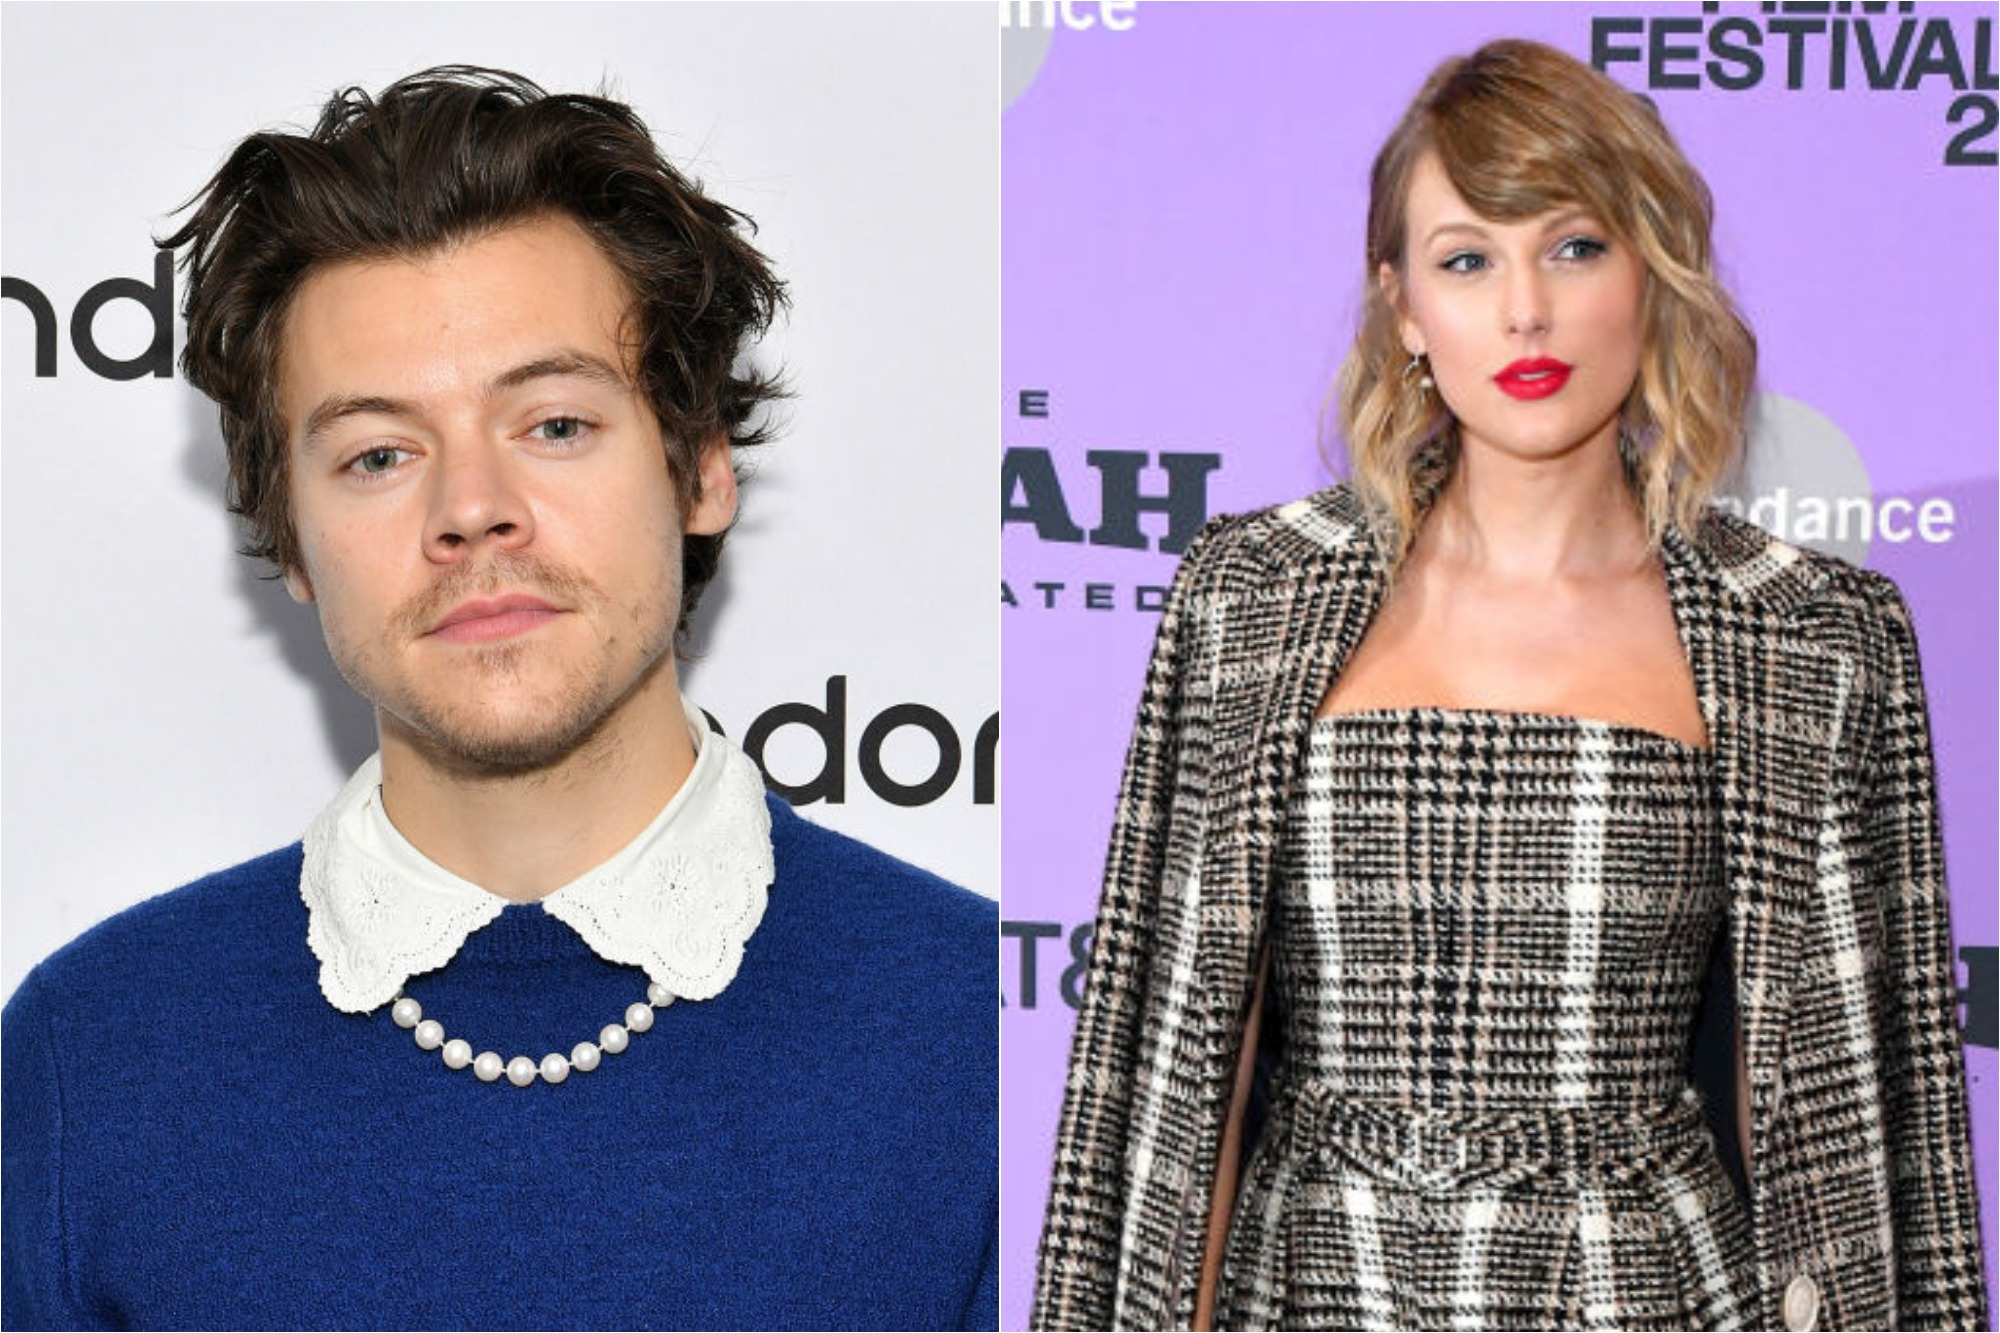 Harry Styles Actually Only Has 1 Song About Taylor Swift But There Are Others That Could Be About Her Too